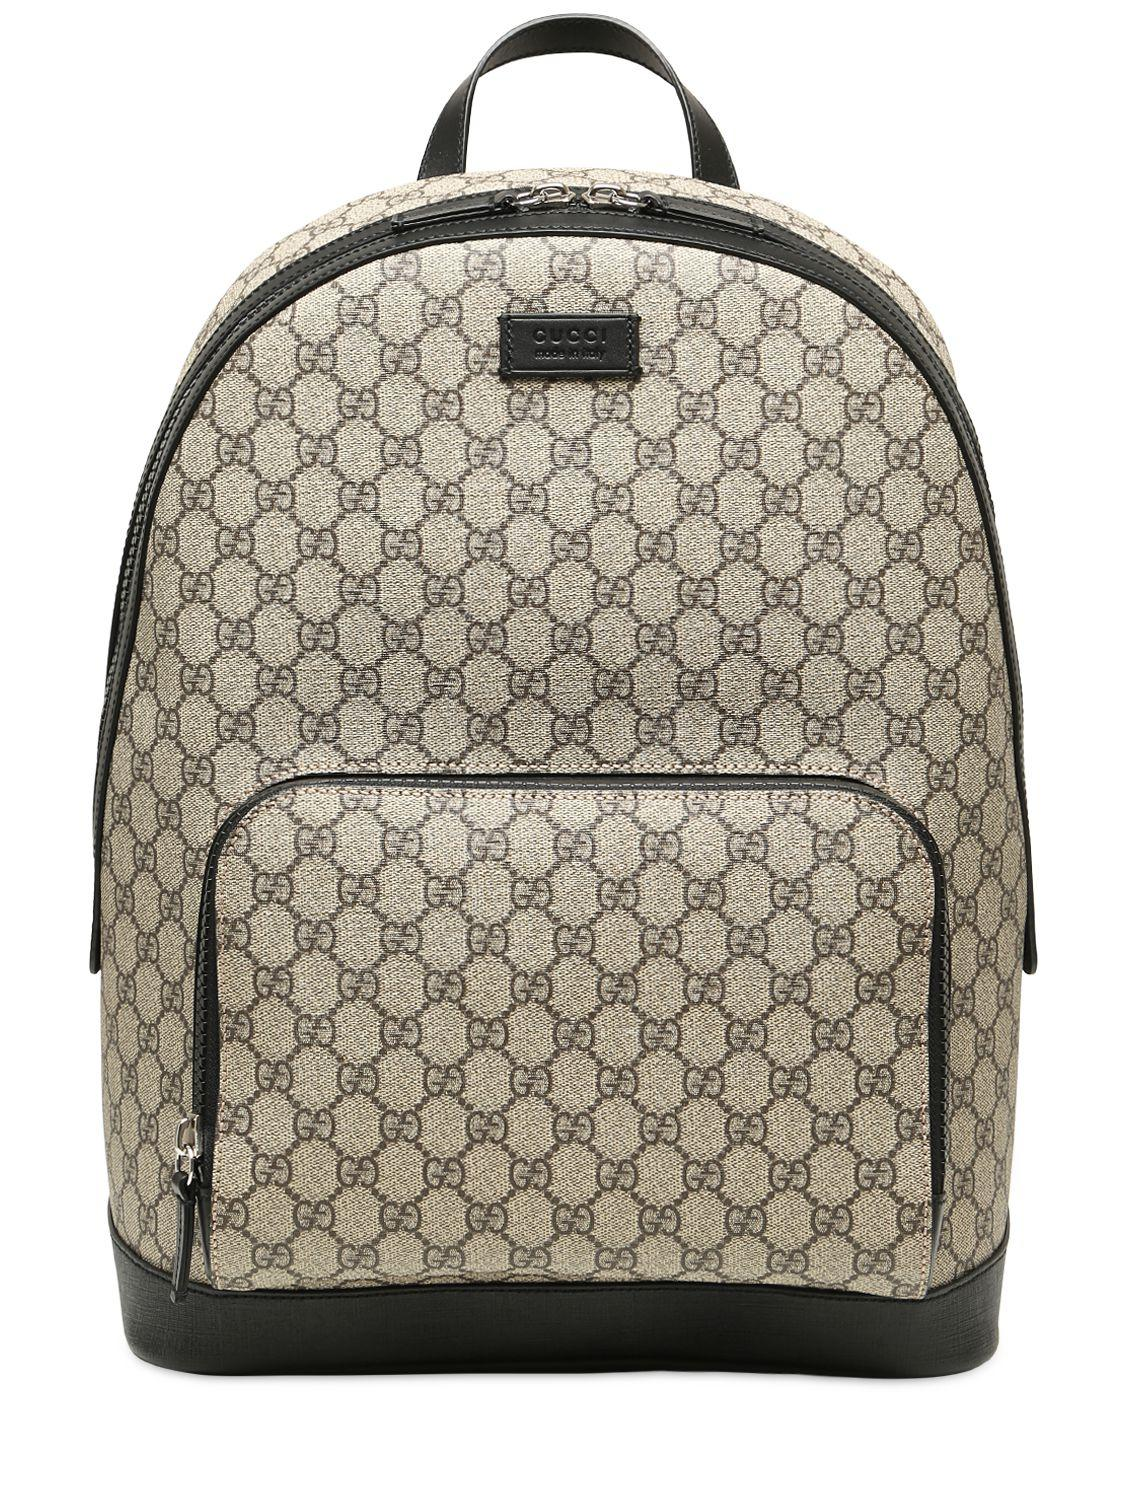 fe0c8be46970 Lyst - Gucci Gg Supreme Print Backpack in Natural - Save 2%